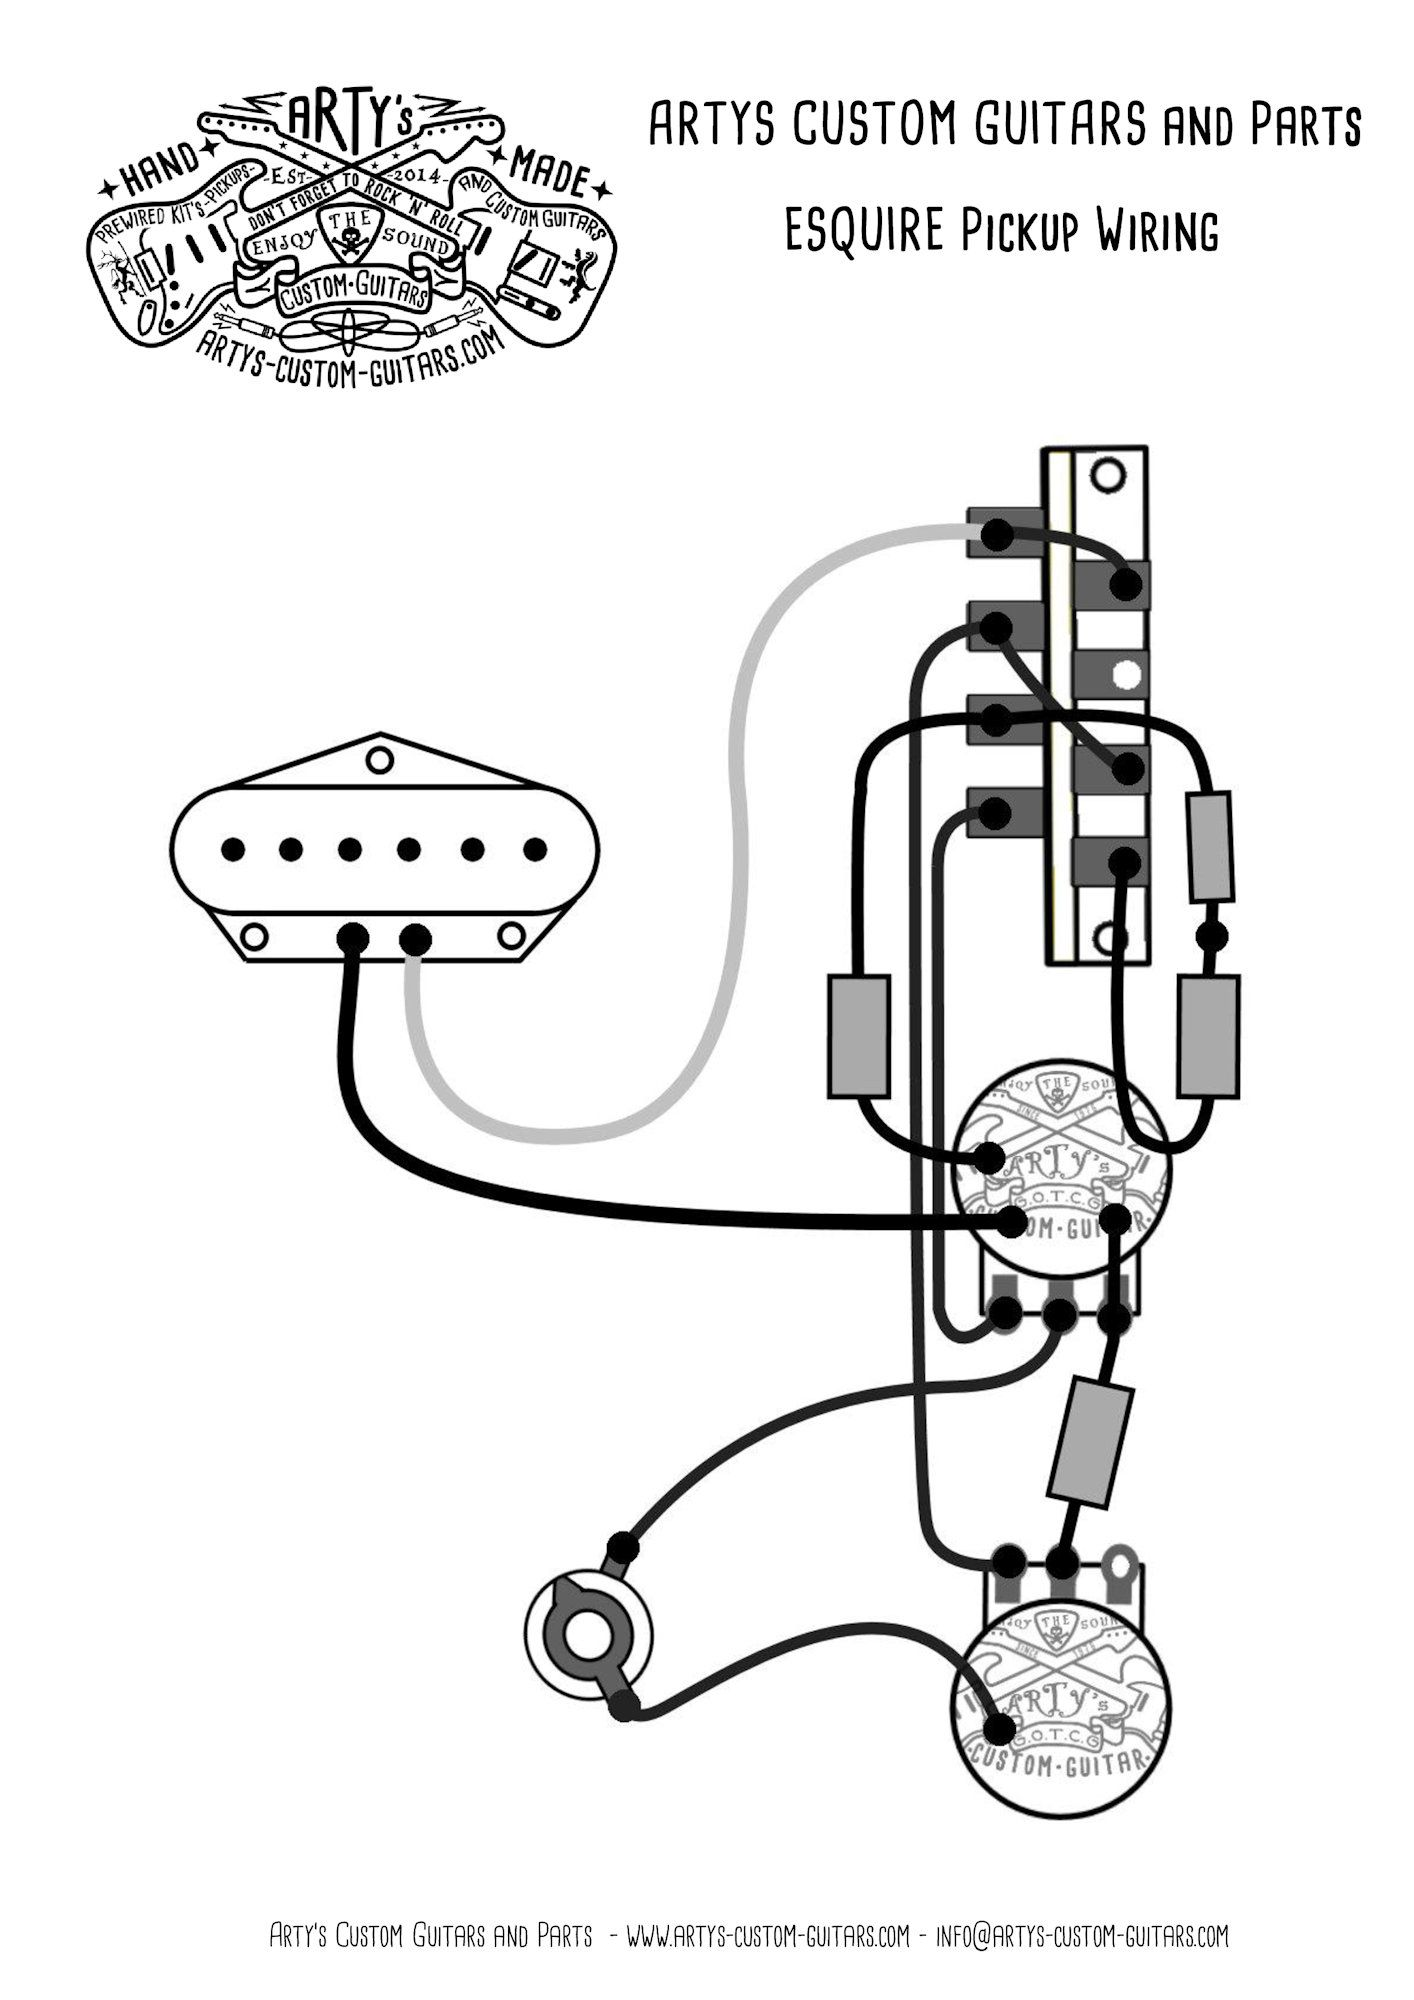 Esquire wiring diagram prewired Kit Arty\u0027s Custom Guitars